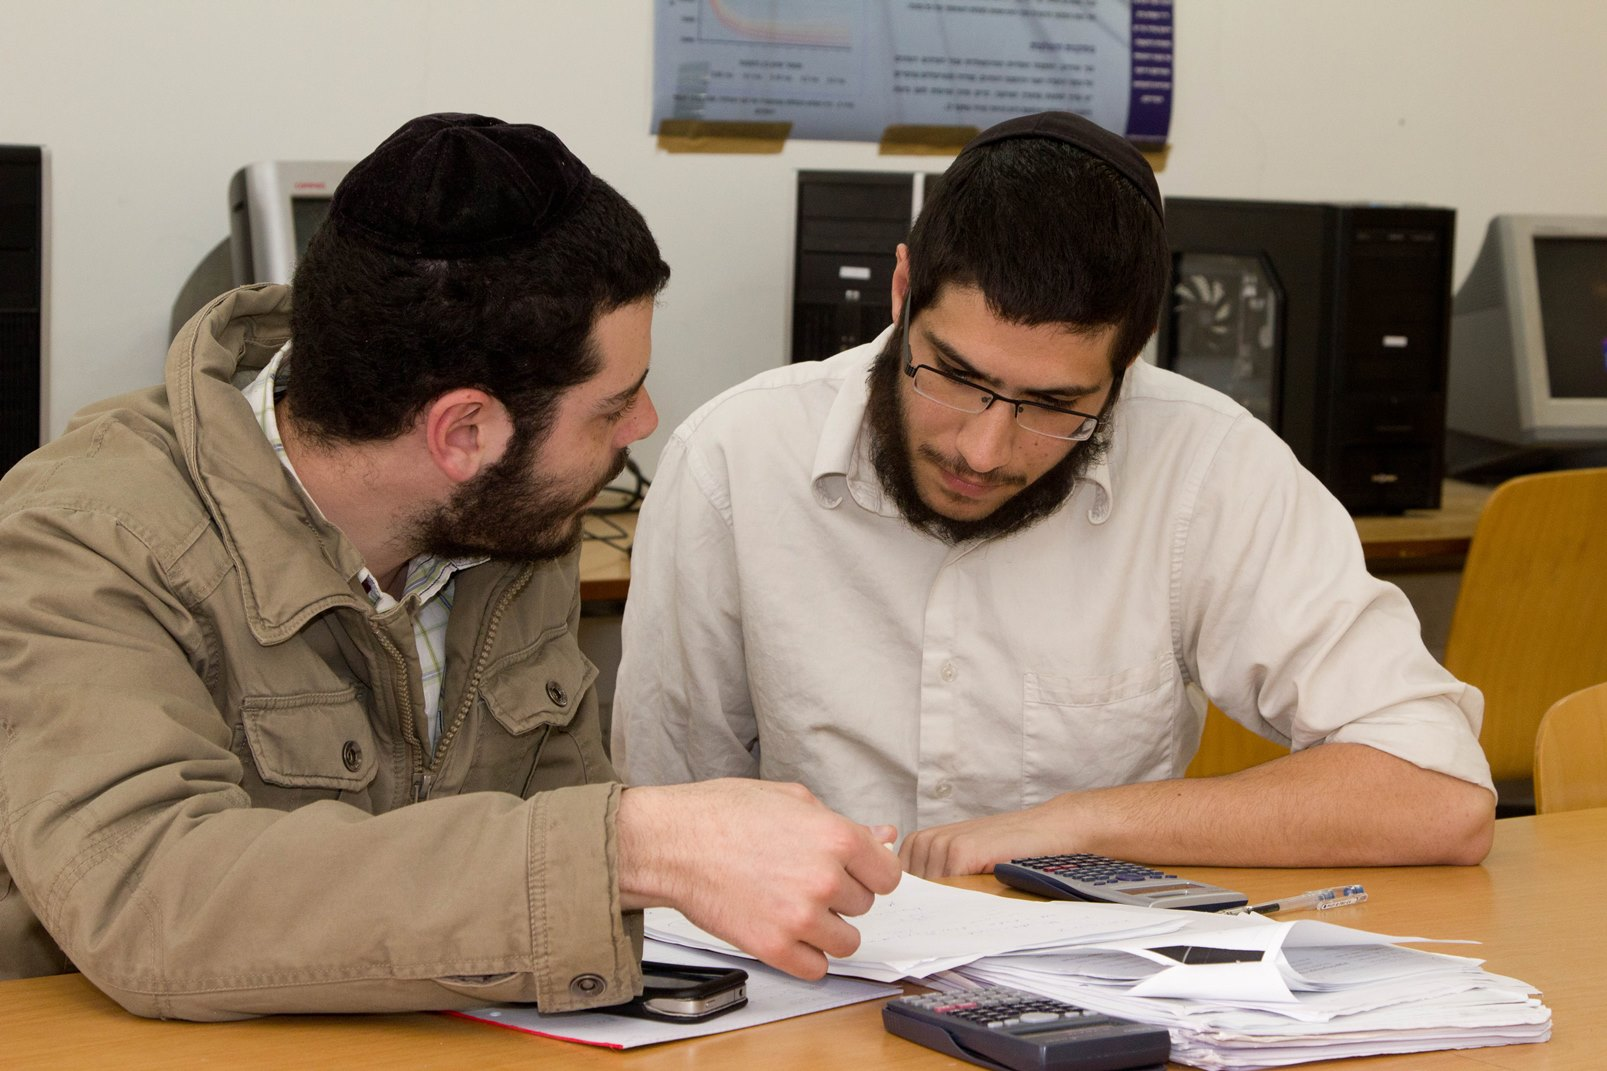 Training The Disadvantaged To Fill Israels High Tech Gap Israel21c U S Soldiers Develop Gadget For Better Night Vision Haredi Students At Jerusalem College Of Technology Photo Courtesy